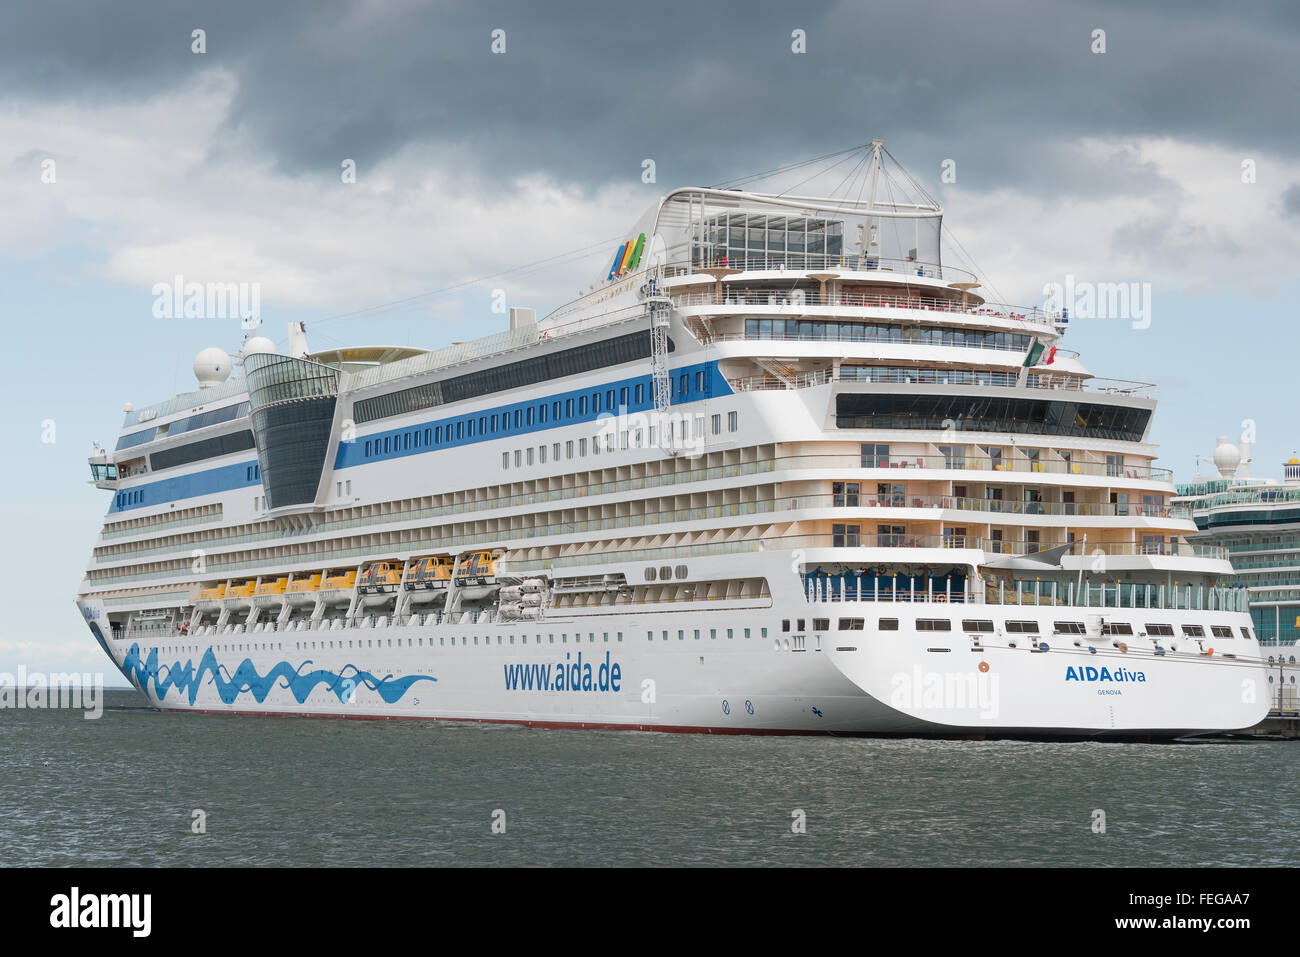 AIDA Diva cruise ship, Port of Tallinn, Tallinn, Harju County, Republic of Estonia Stock Photo